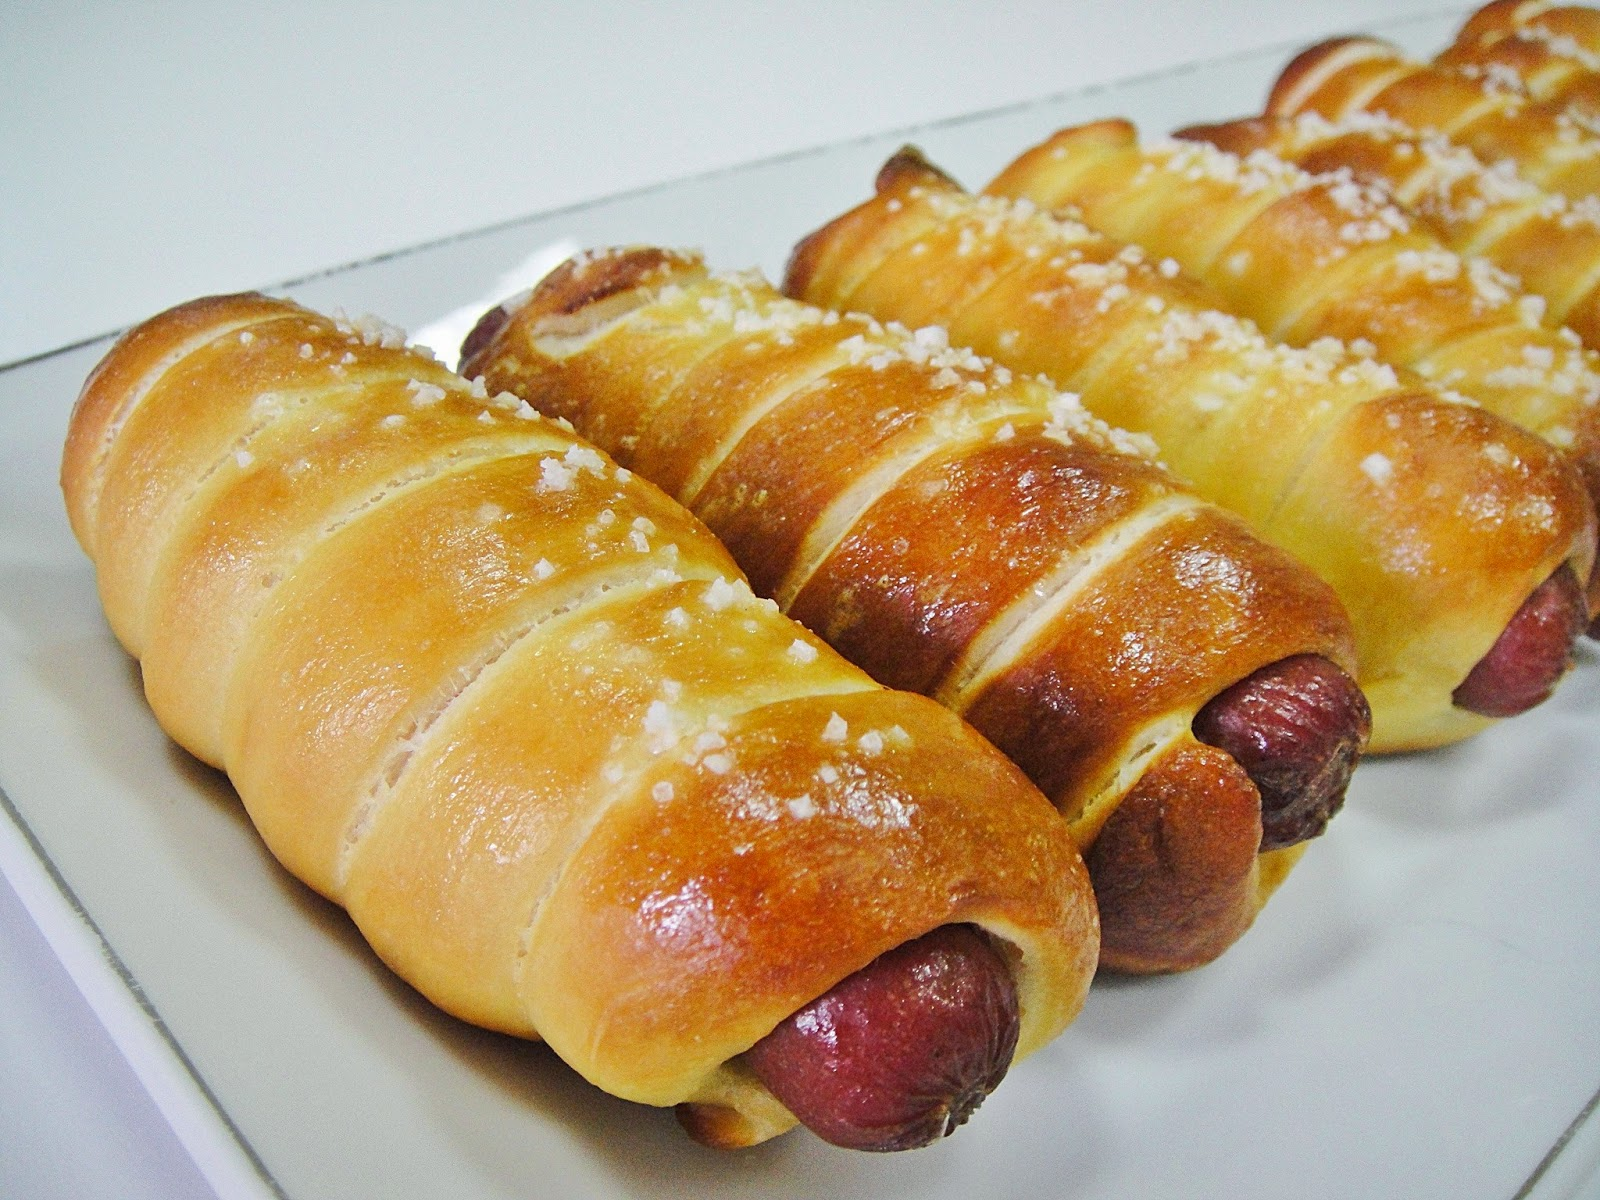 Hot Dogs Wrapped In Bread Dough